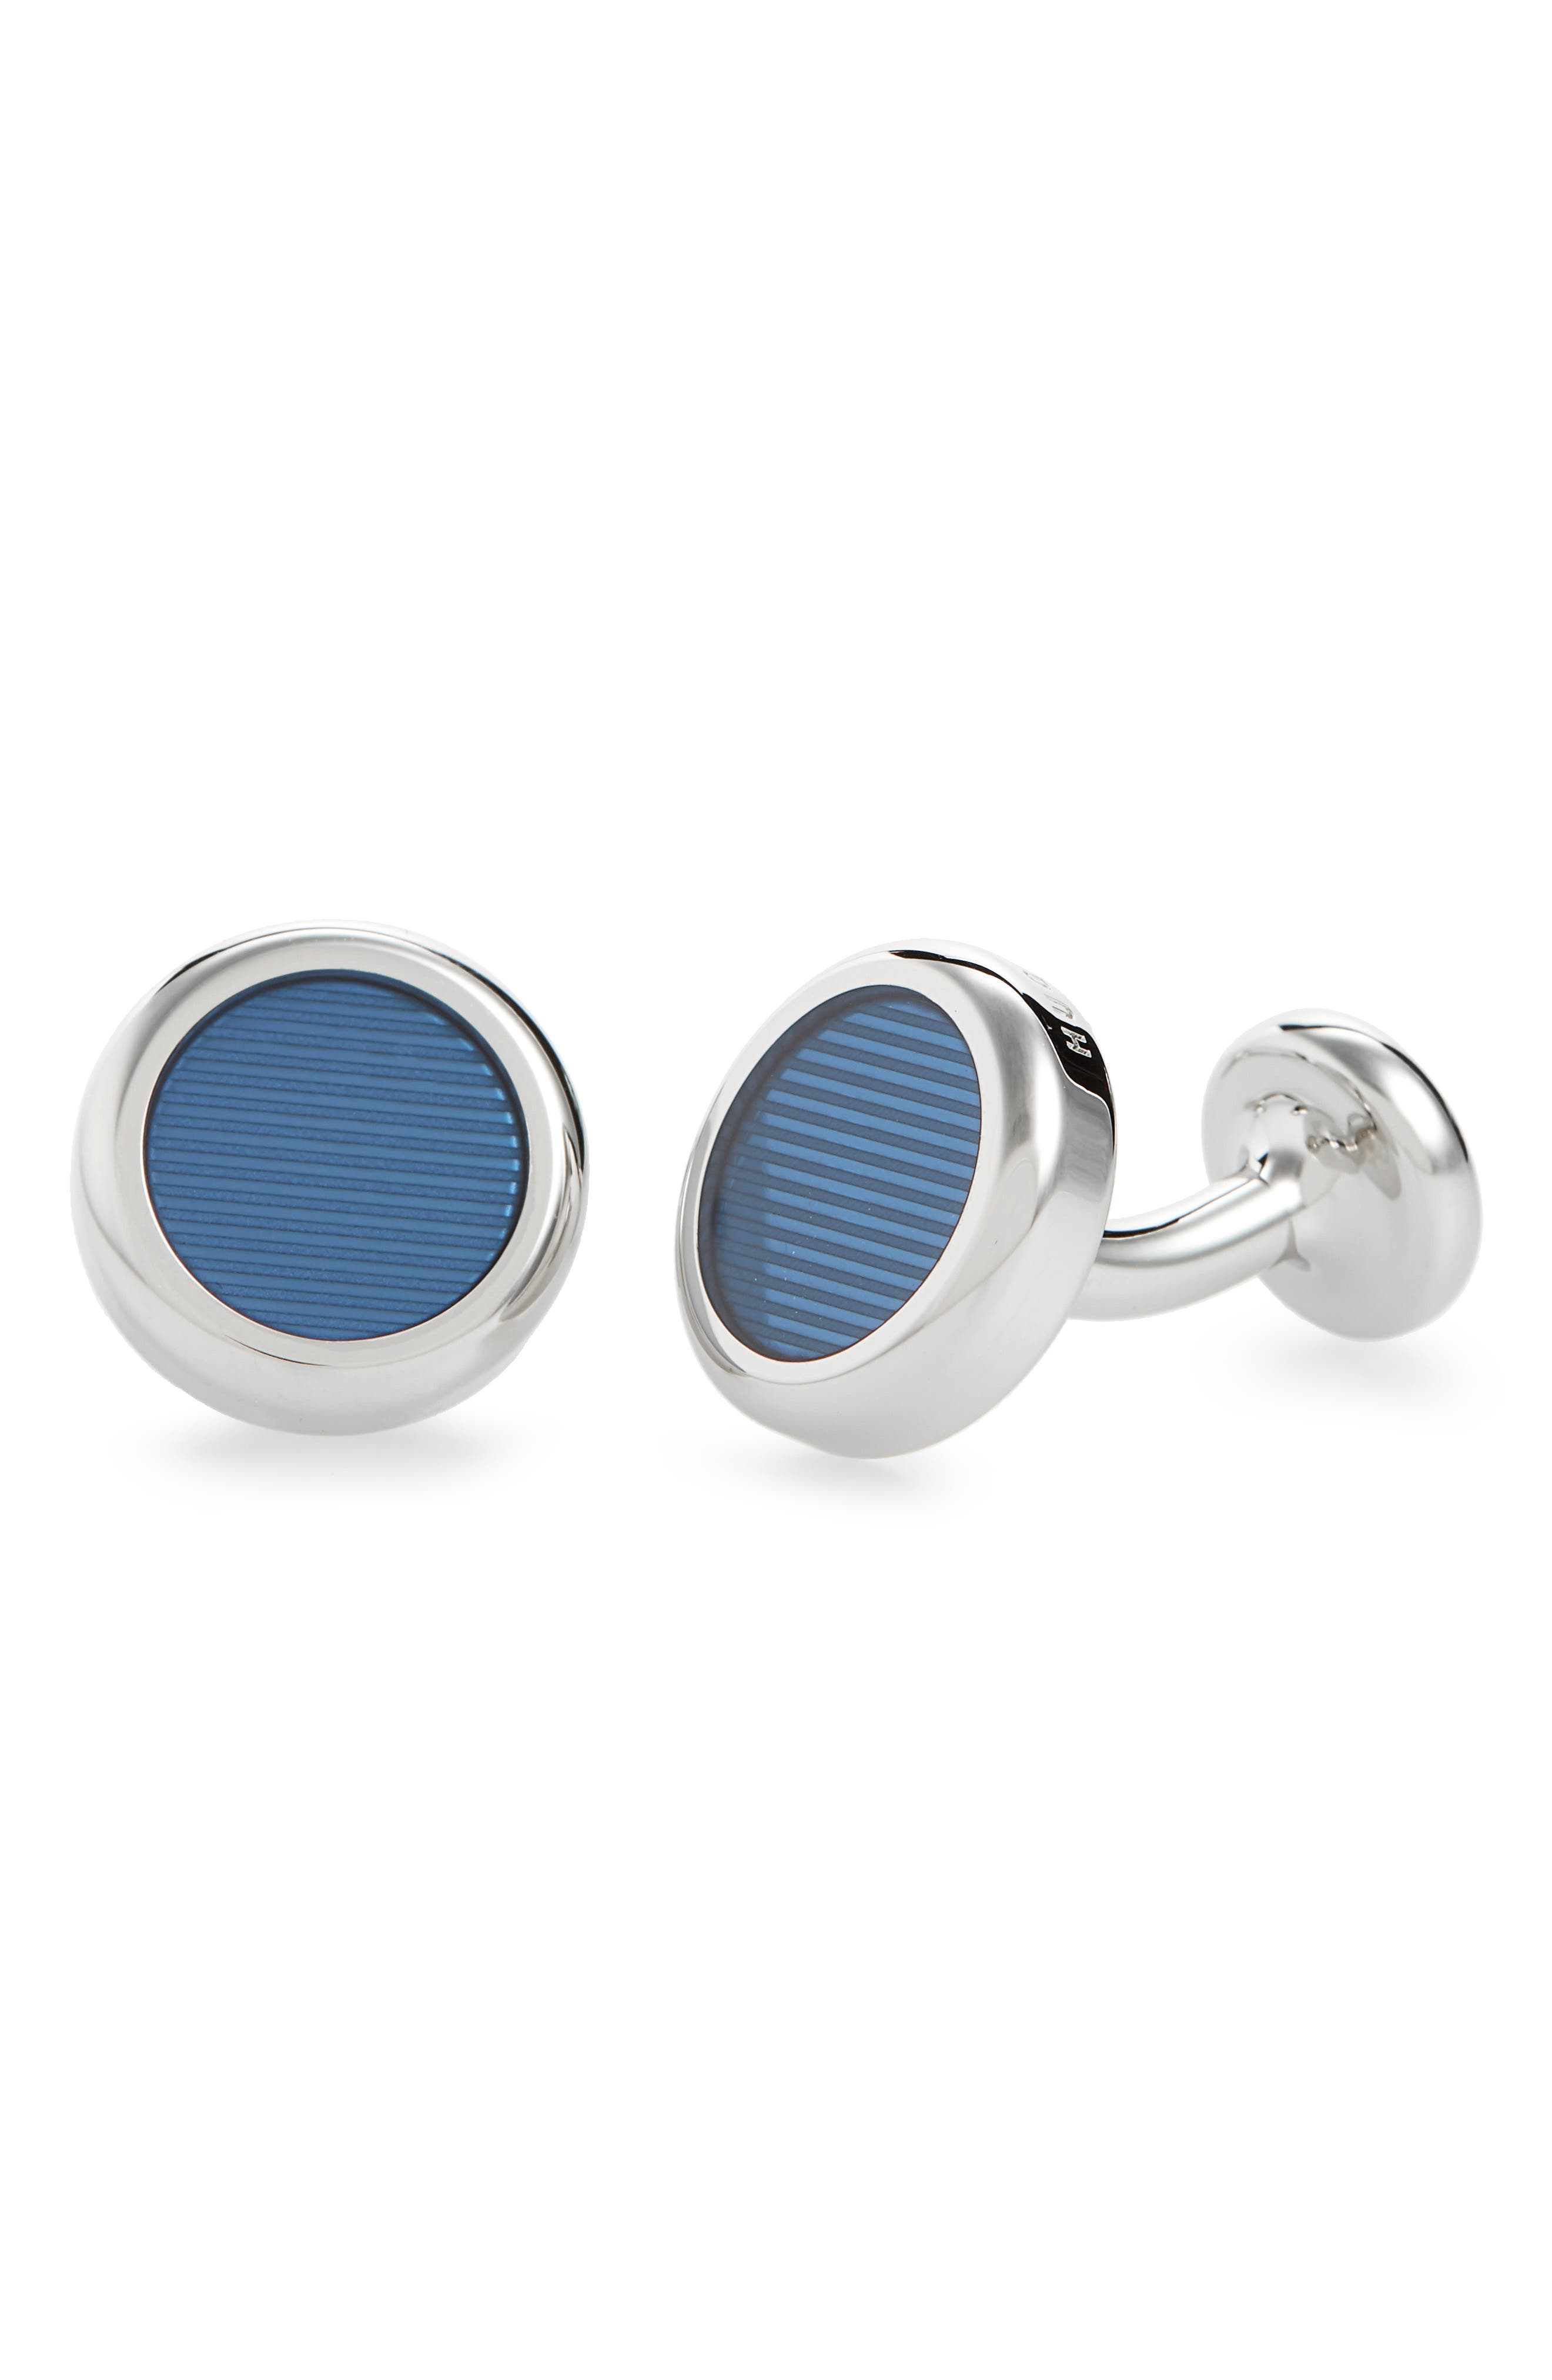 Gil Round Cuff Links,                         Main,                         color,